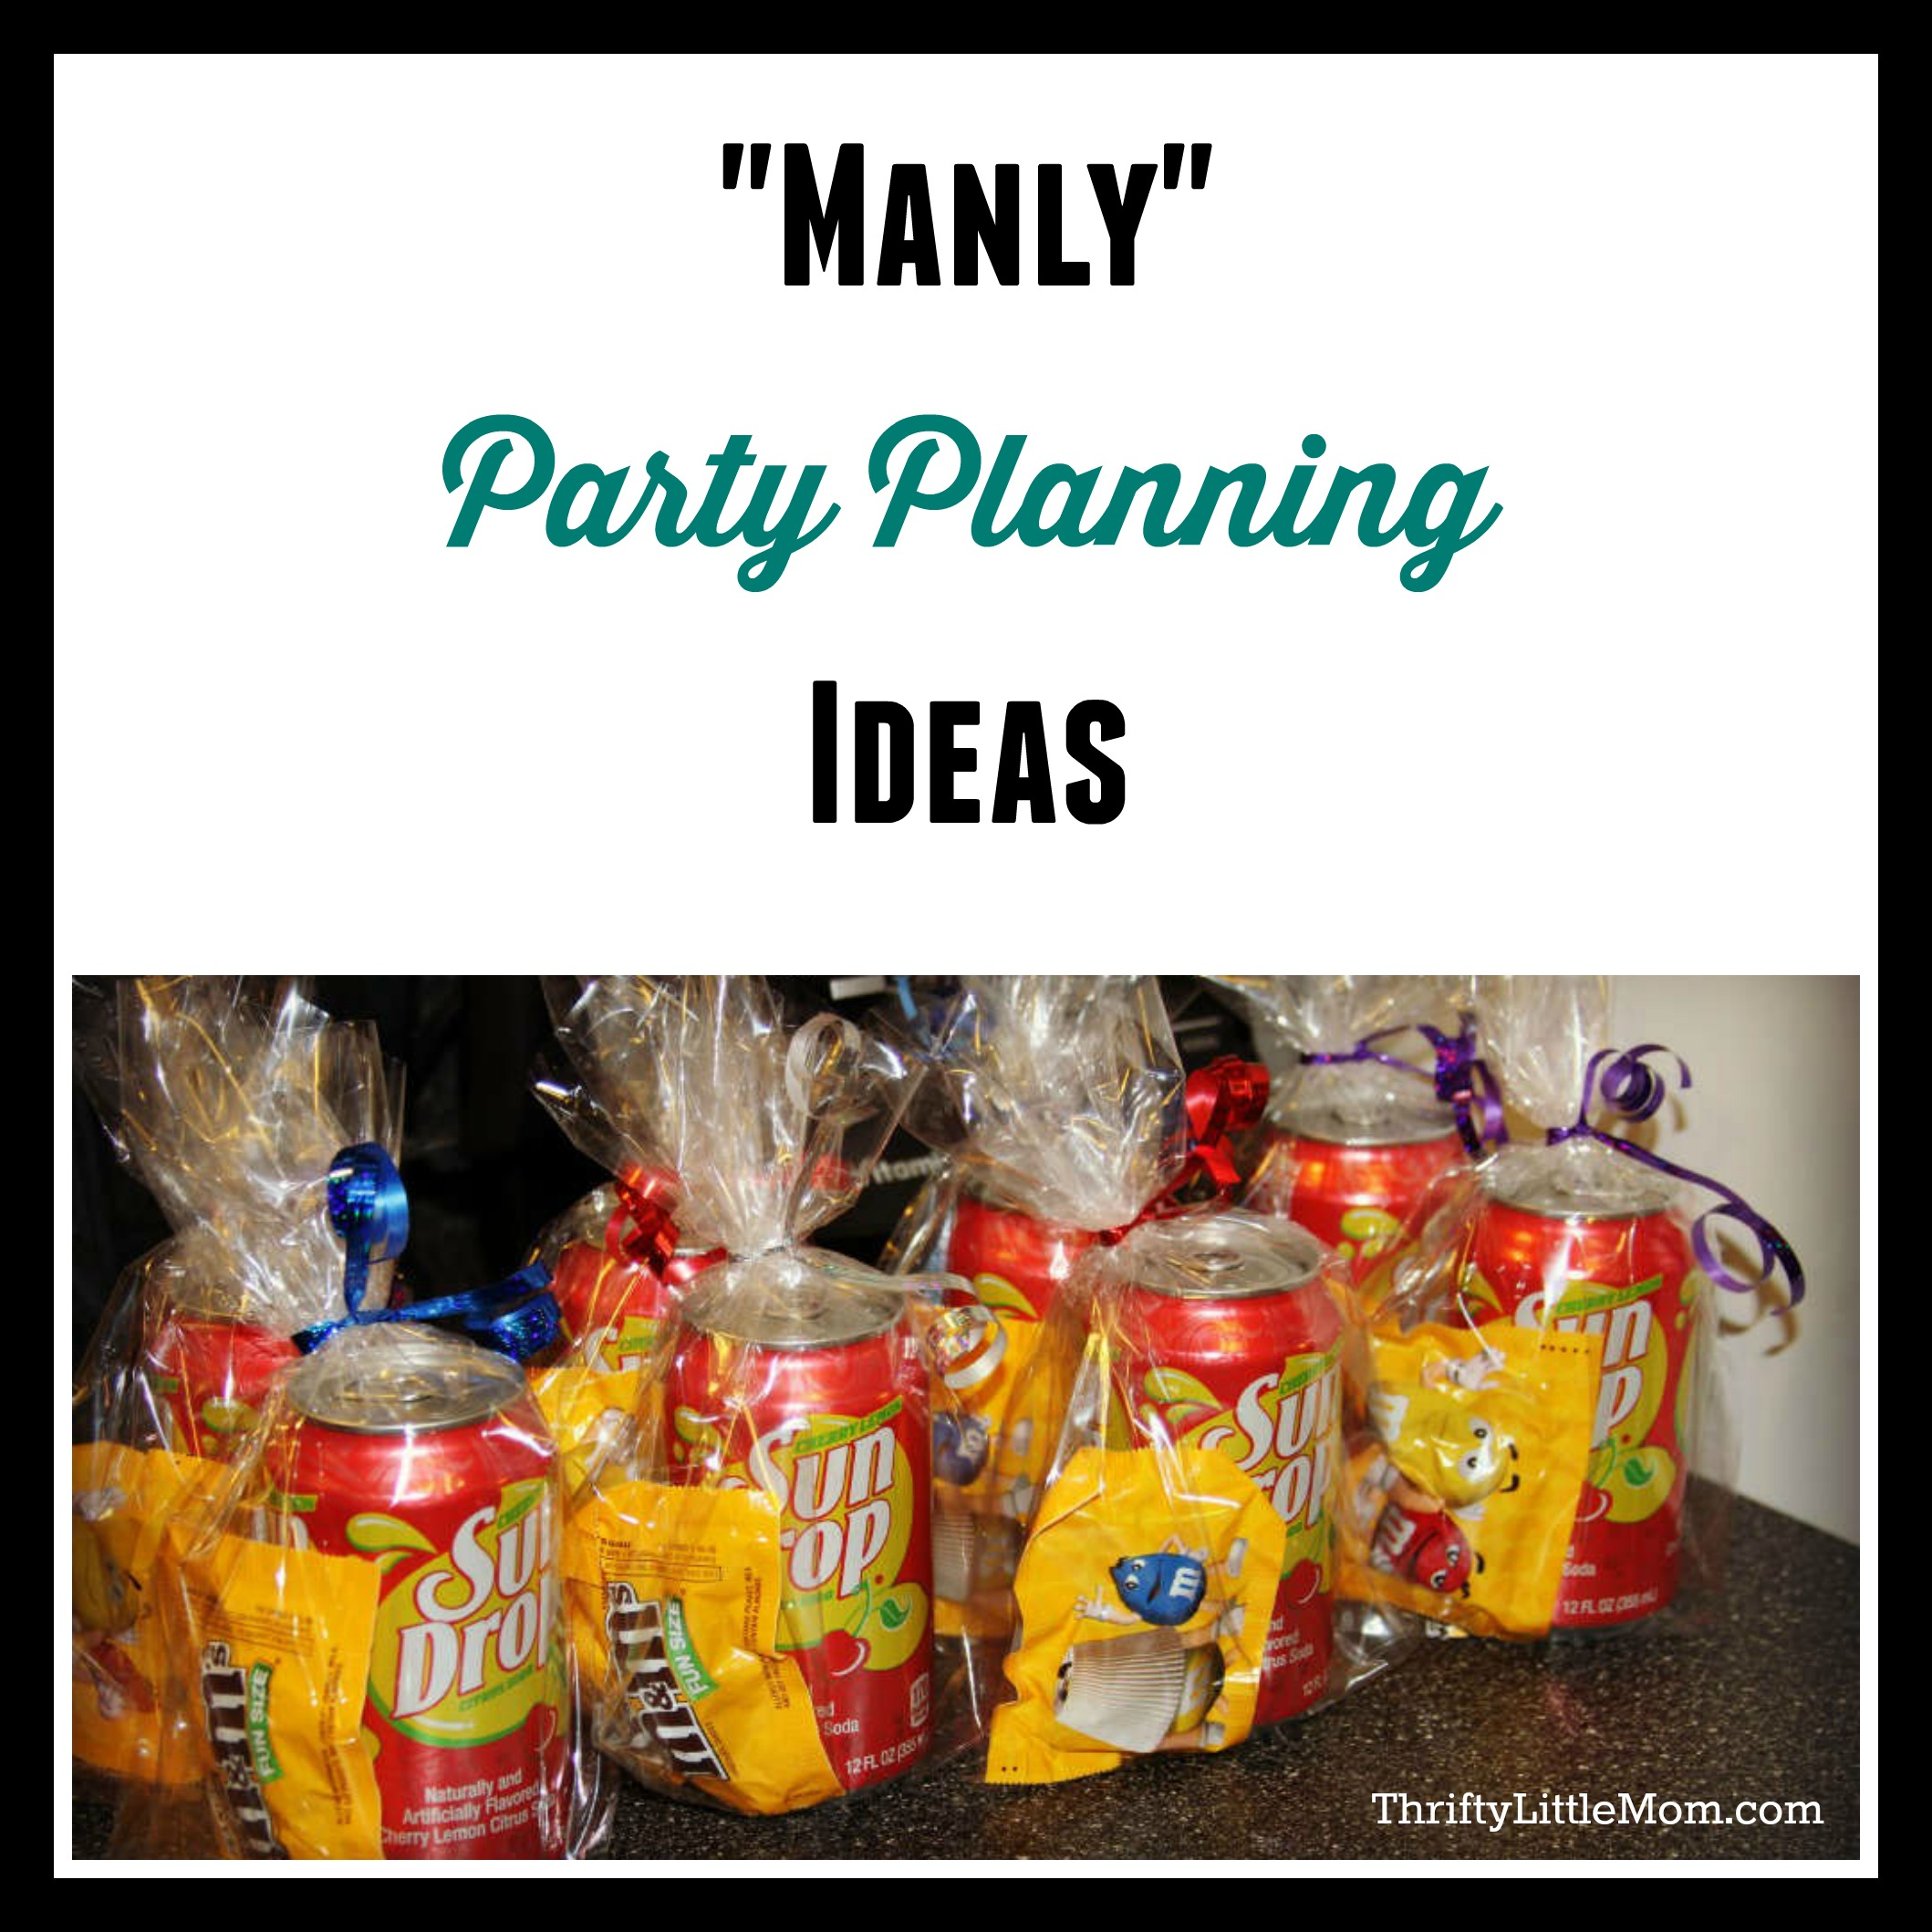 """Manly"" Party Planning the Thrifty Way"